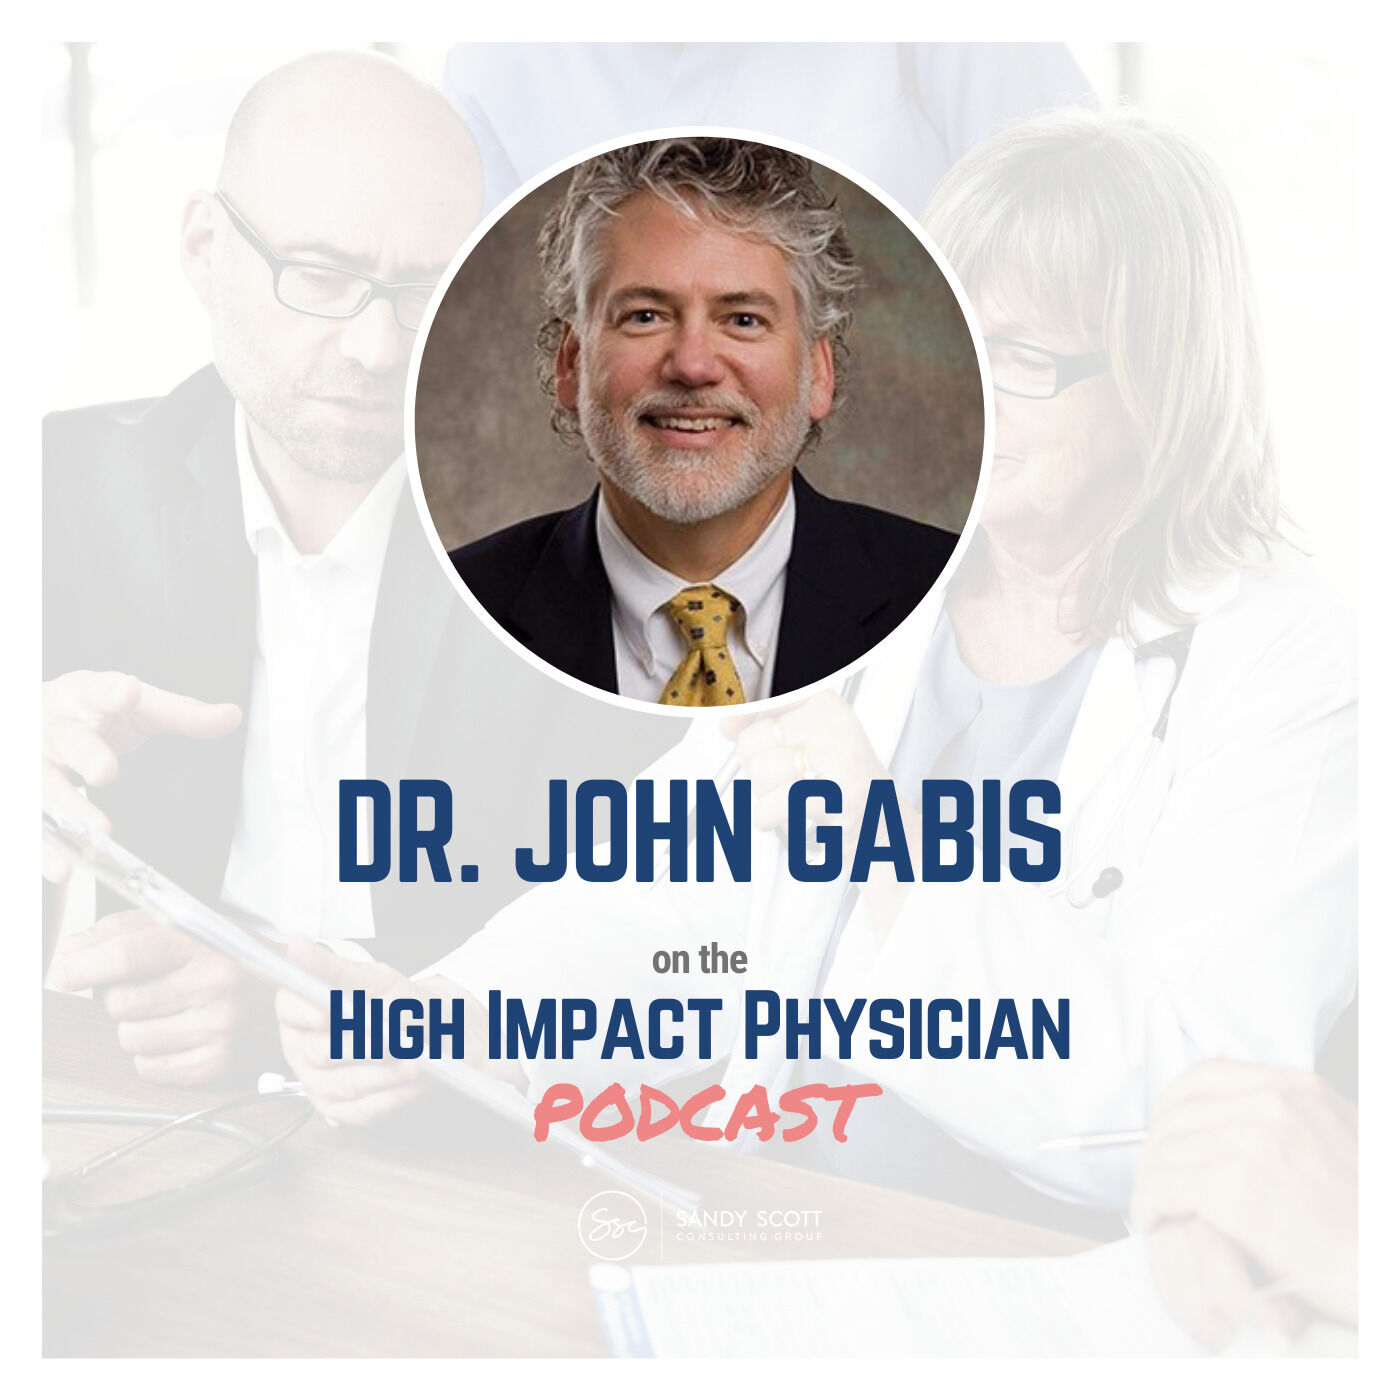 """Saying """"I Love You"""" to Patients, Resources for Physician Self-Governance, and Dealing with Embezzlement (Dr. John Gabis)"""